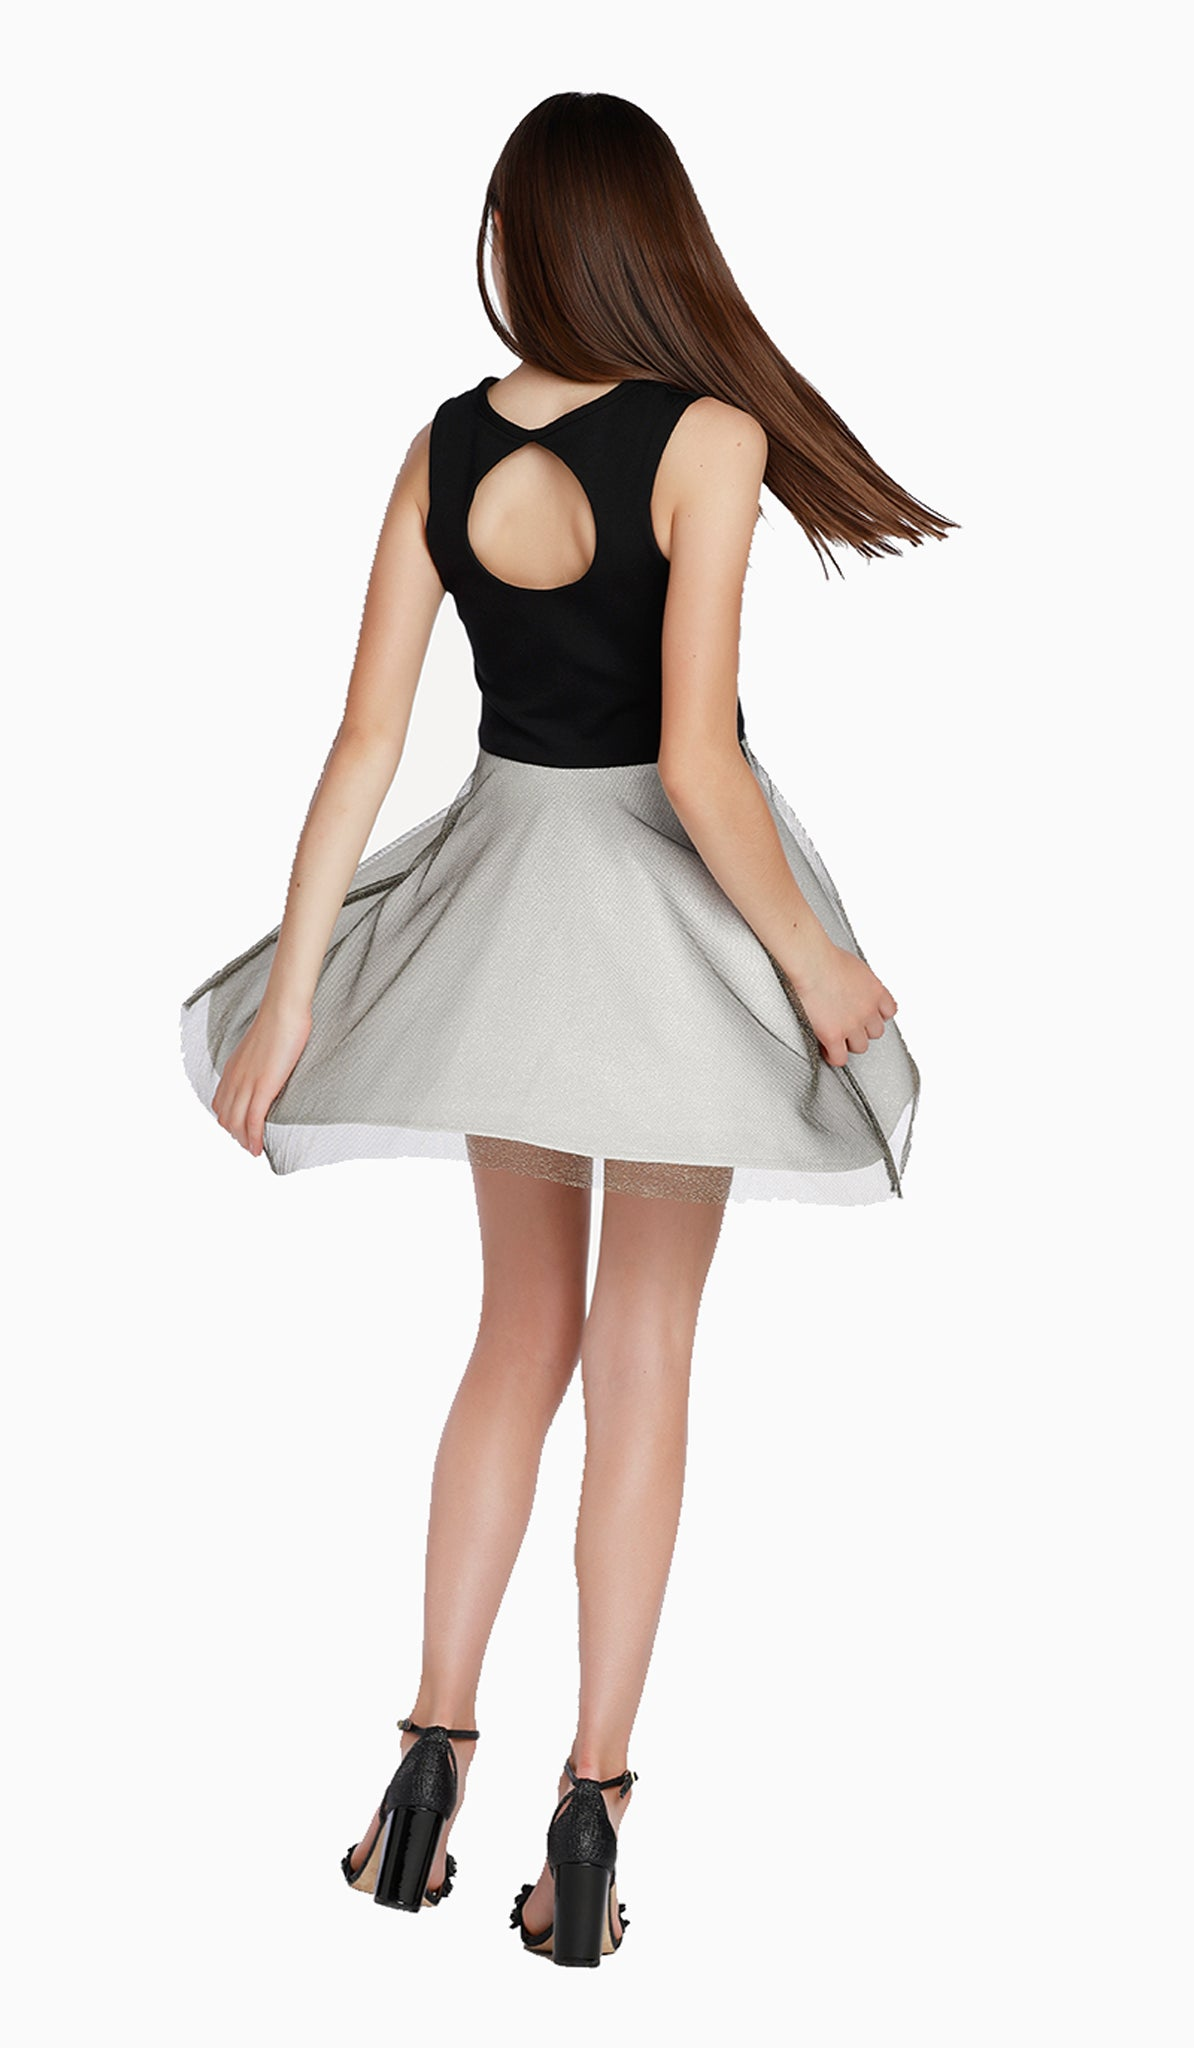 THE VICTORIA DRESS - Sallymiller.com - [variant title] - | Event & Party Dresses for Tween Girls & Juniors | Weddings Dresses, Bat Mitzvah Dresses, Sweet Sixteen Dresses, Graduation Dresses, Birthday Party Dresses, Bar Mitzvah Dresses, Cotillion Dresses